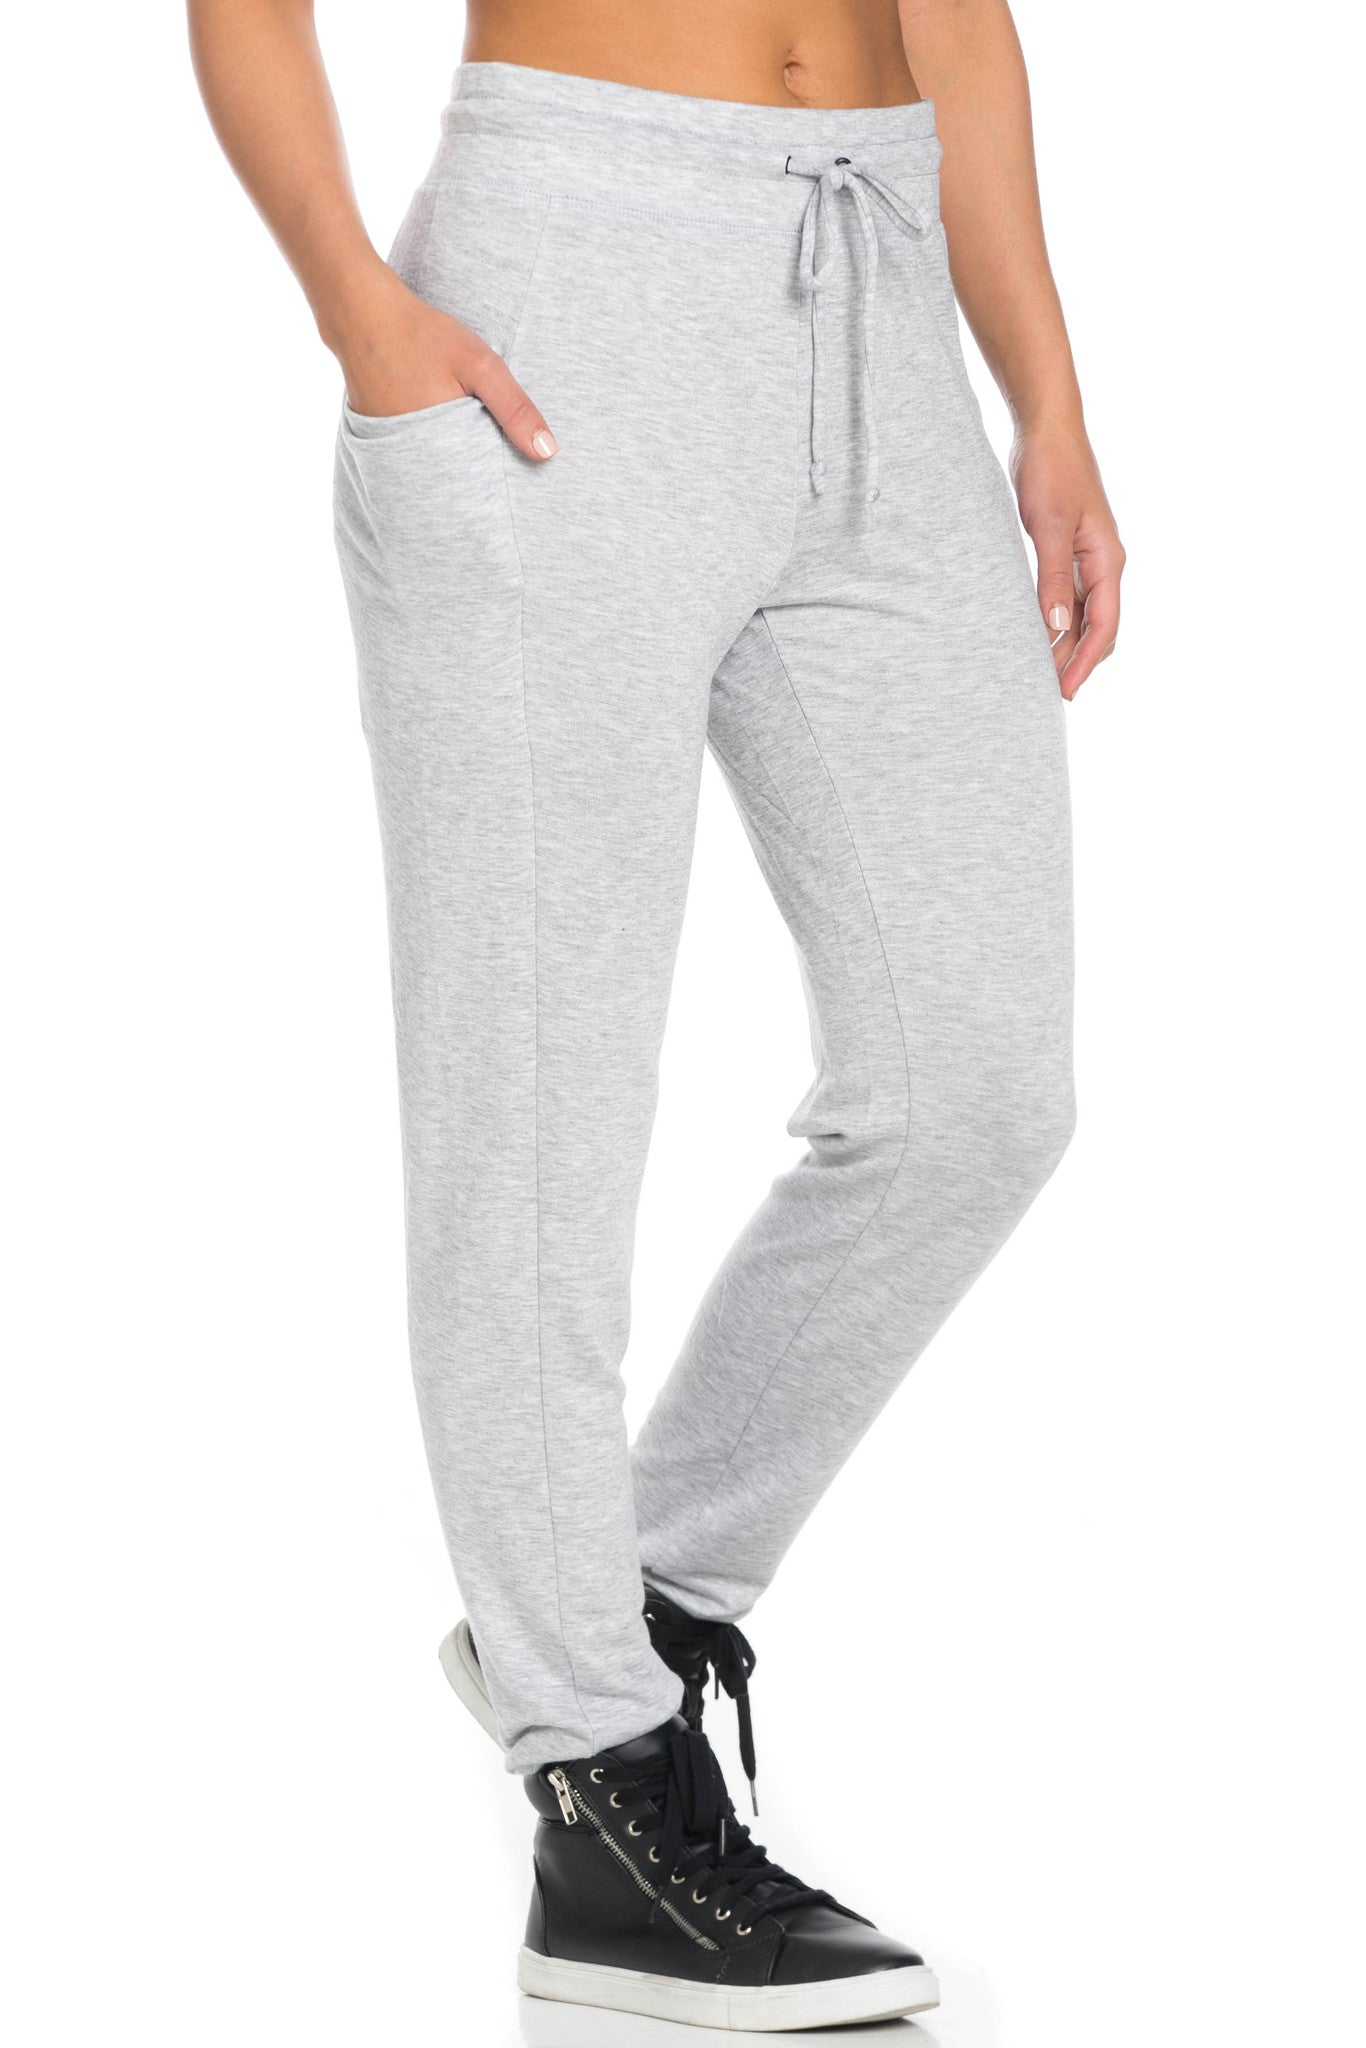 Heather Grey Harem Pants - Pants - My Yuccie - 2